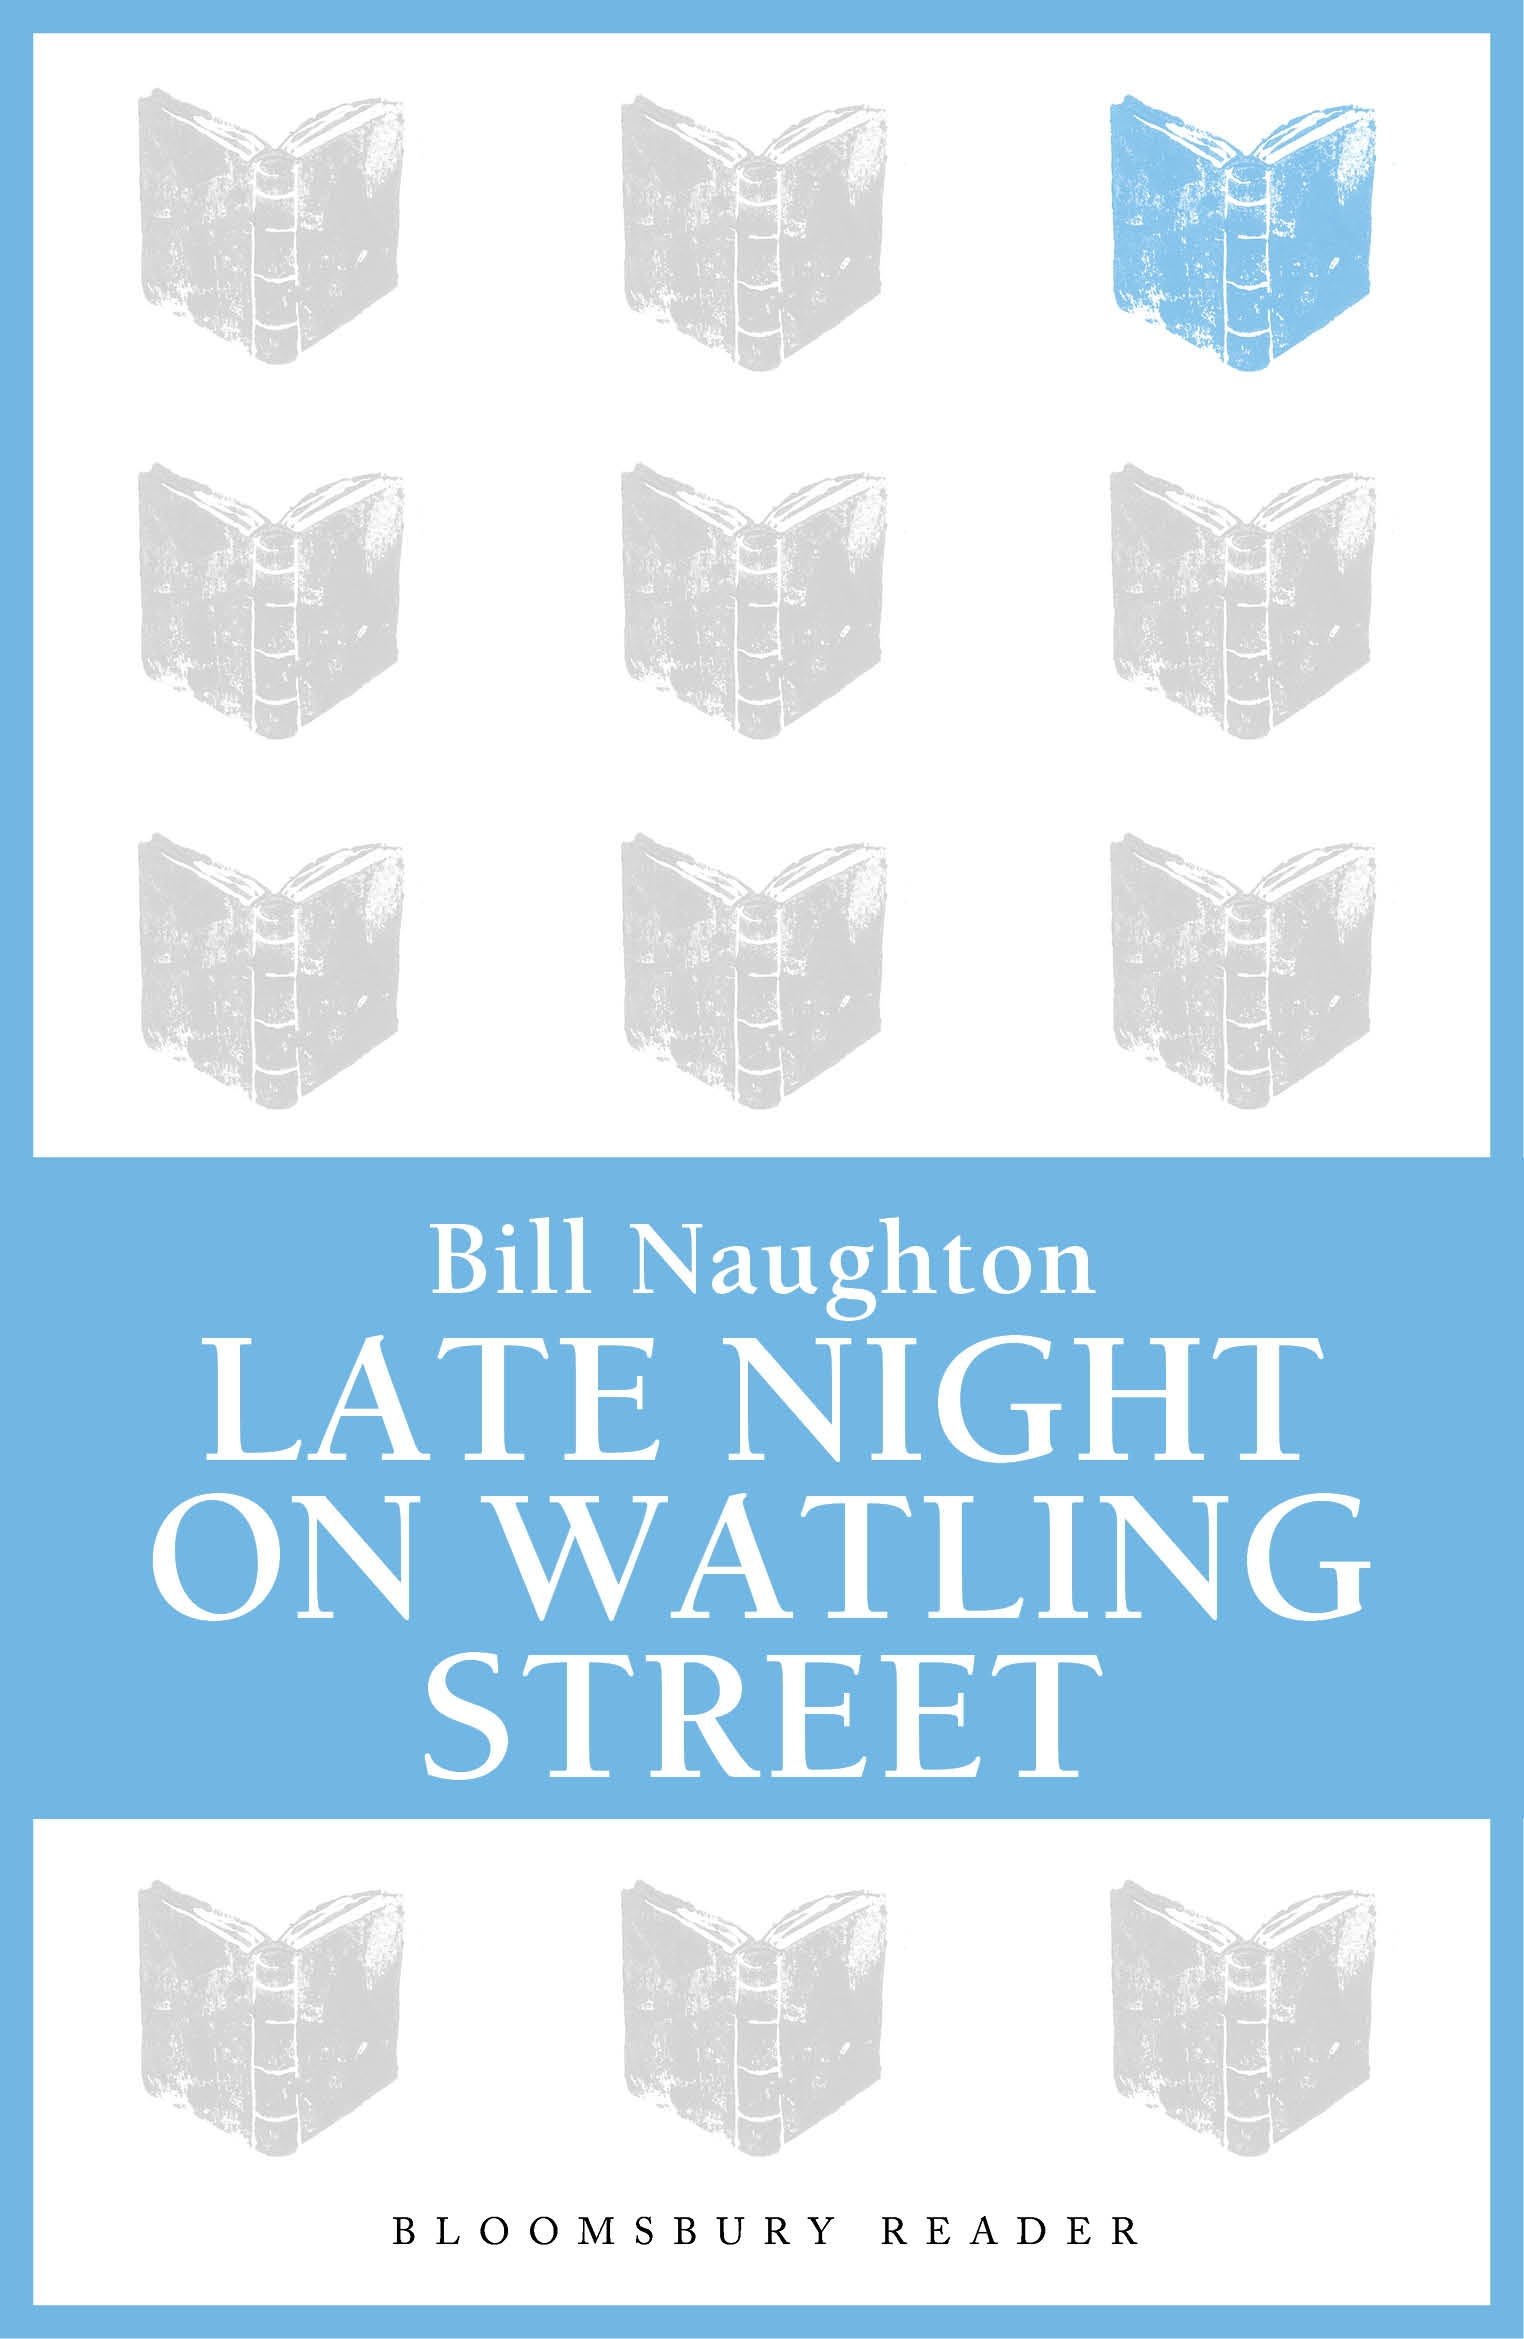 Late Night on Watling Street